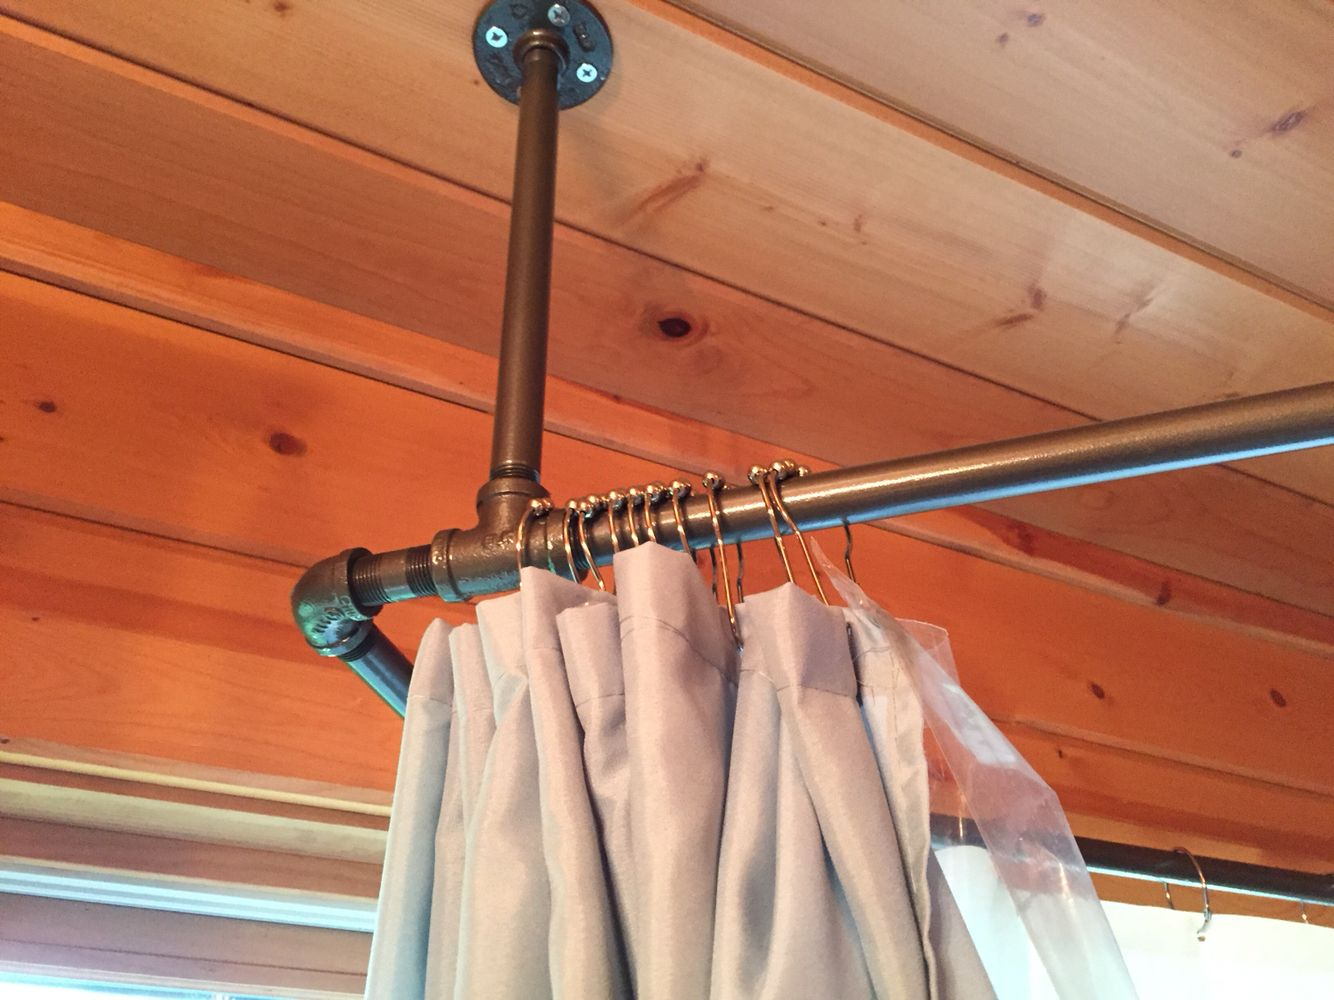 Used Black Iron Piping To Create A Shower Curtain Rod That